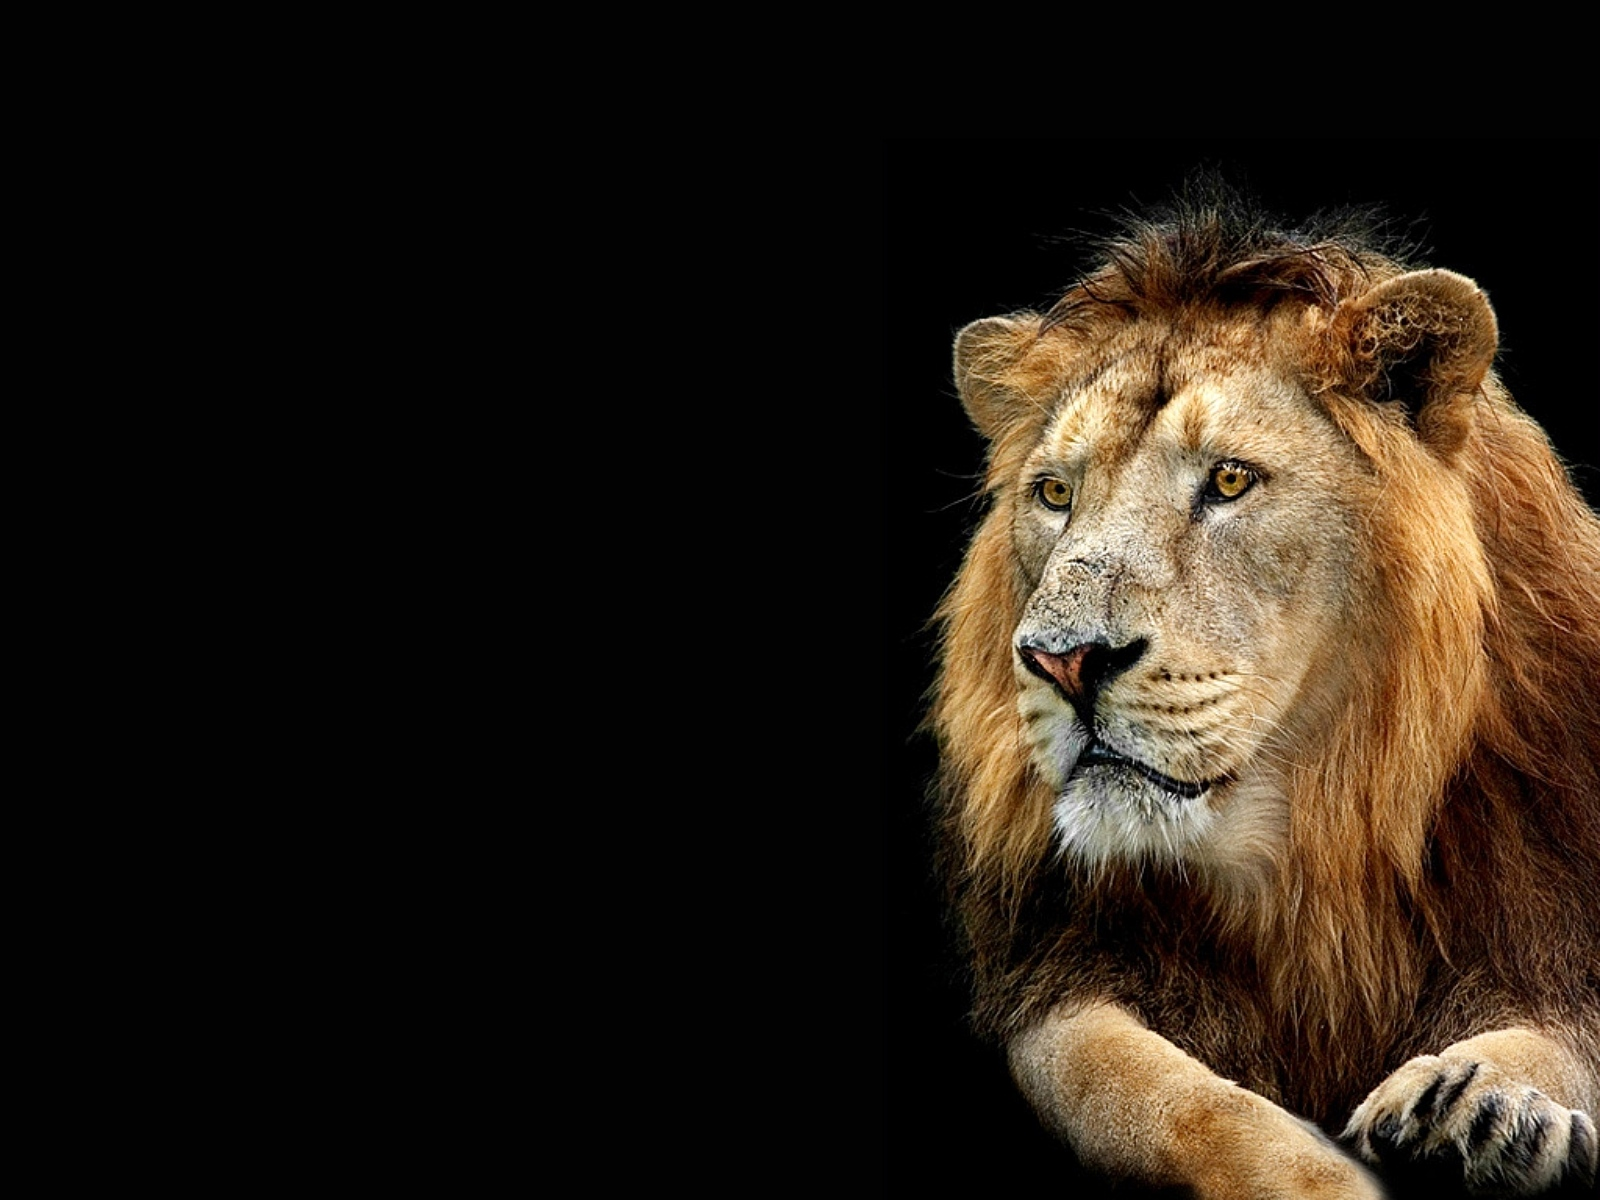 Lion Wallpapers | 3D Wallpaper | Nature Wallpaper | Free Download Wallpaper